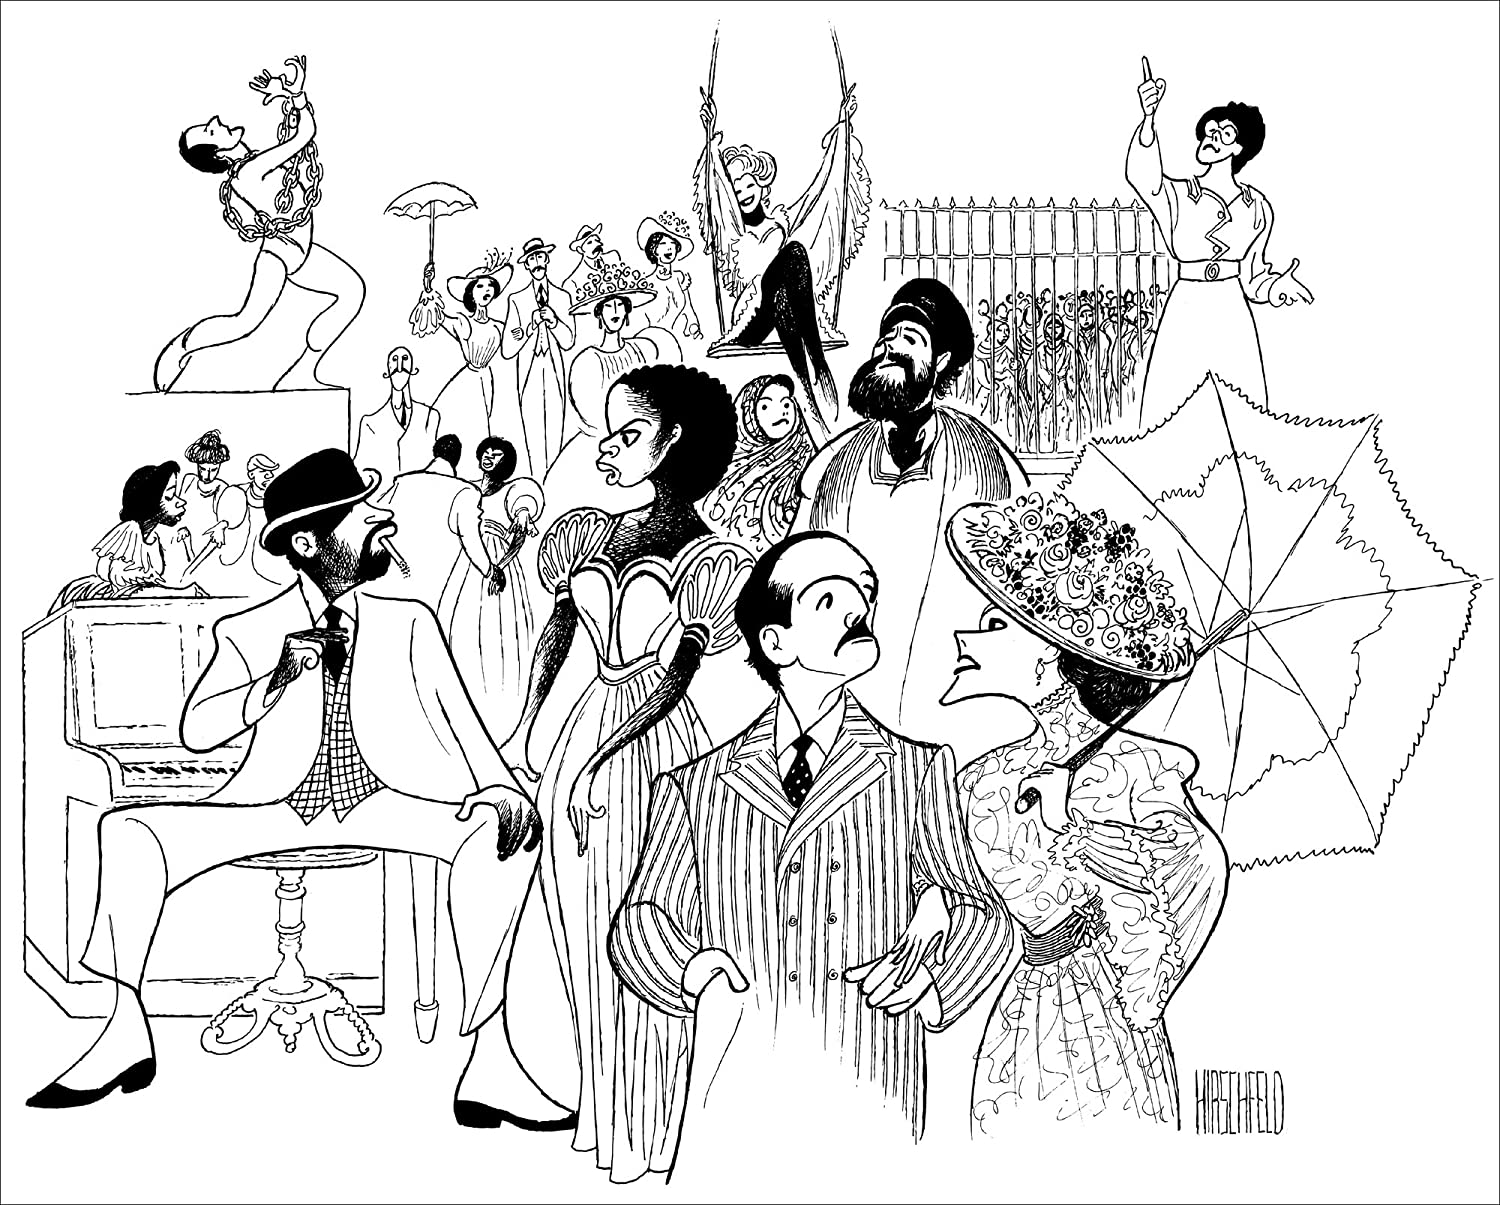 RAGTIME, Hand Signed by AL HIRSCHFELD, Limited Edition Lithograph, Brian Stokes Mitchell, Judy Kaye, Jim Corti, Lynette Perry, Mark Jacoby, Marin Mazzie, Peter Friedman, Lea Michele, and Audra McDonald THE MARGO FEIDEN GALLERIES LTD. New York